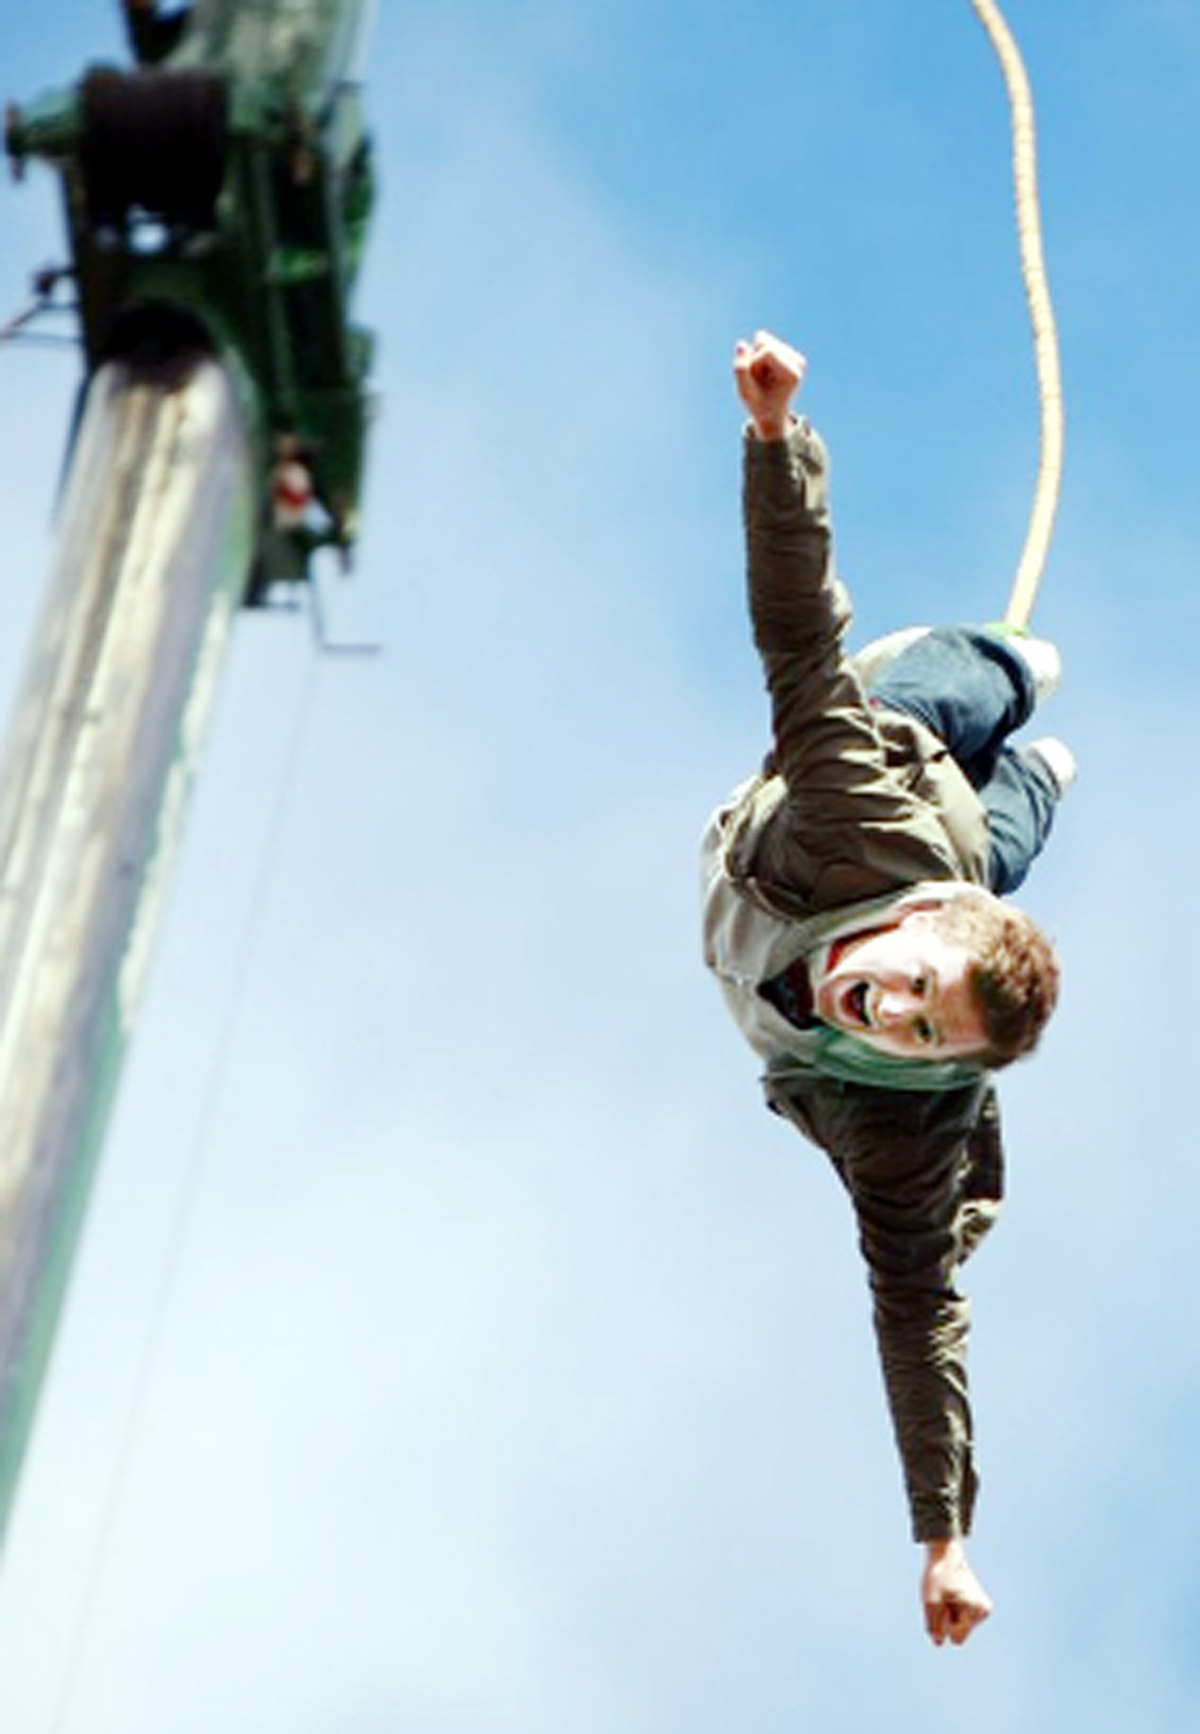 Darwen Bungee Day on meeting agenda